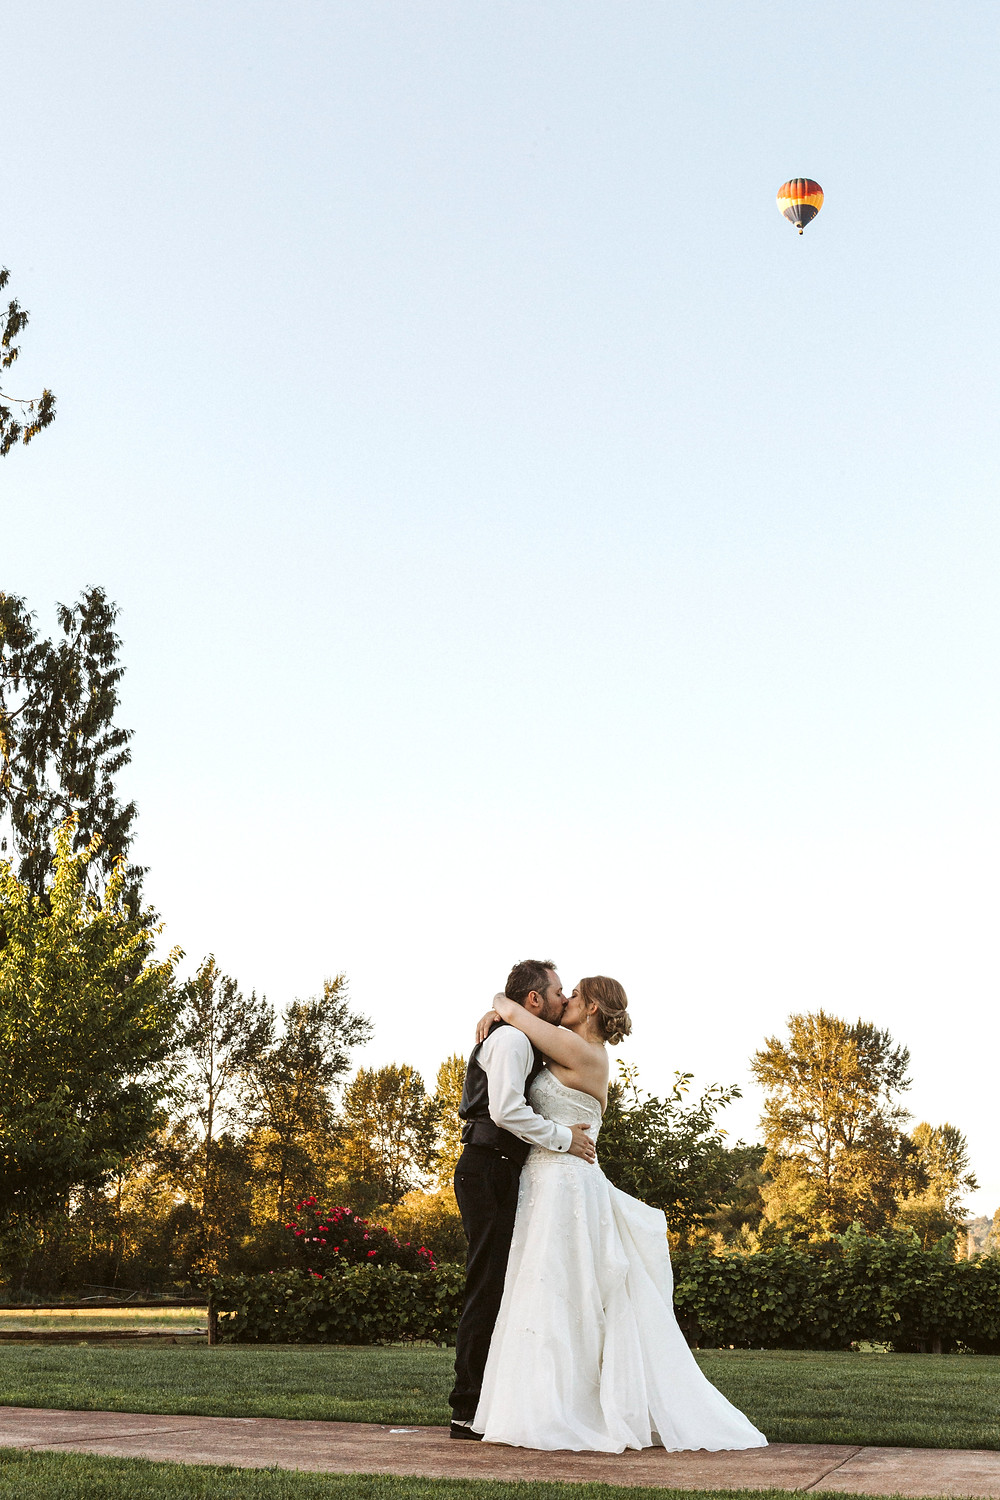 A newlywed couple kiss outdoors during a summer wedding at Hidden Meadows in Snohomish, a wedding venue near Seattle, WA. | My Snohomish Wedding | Snohomish Wedding Planning